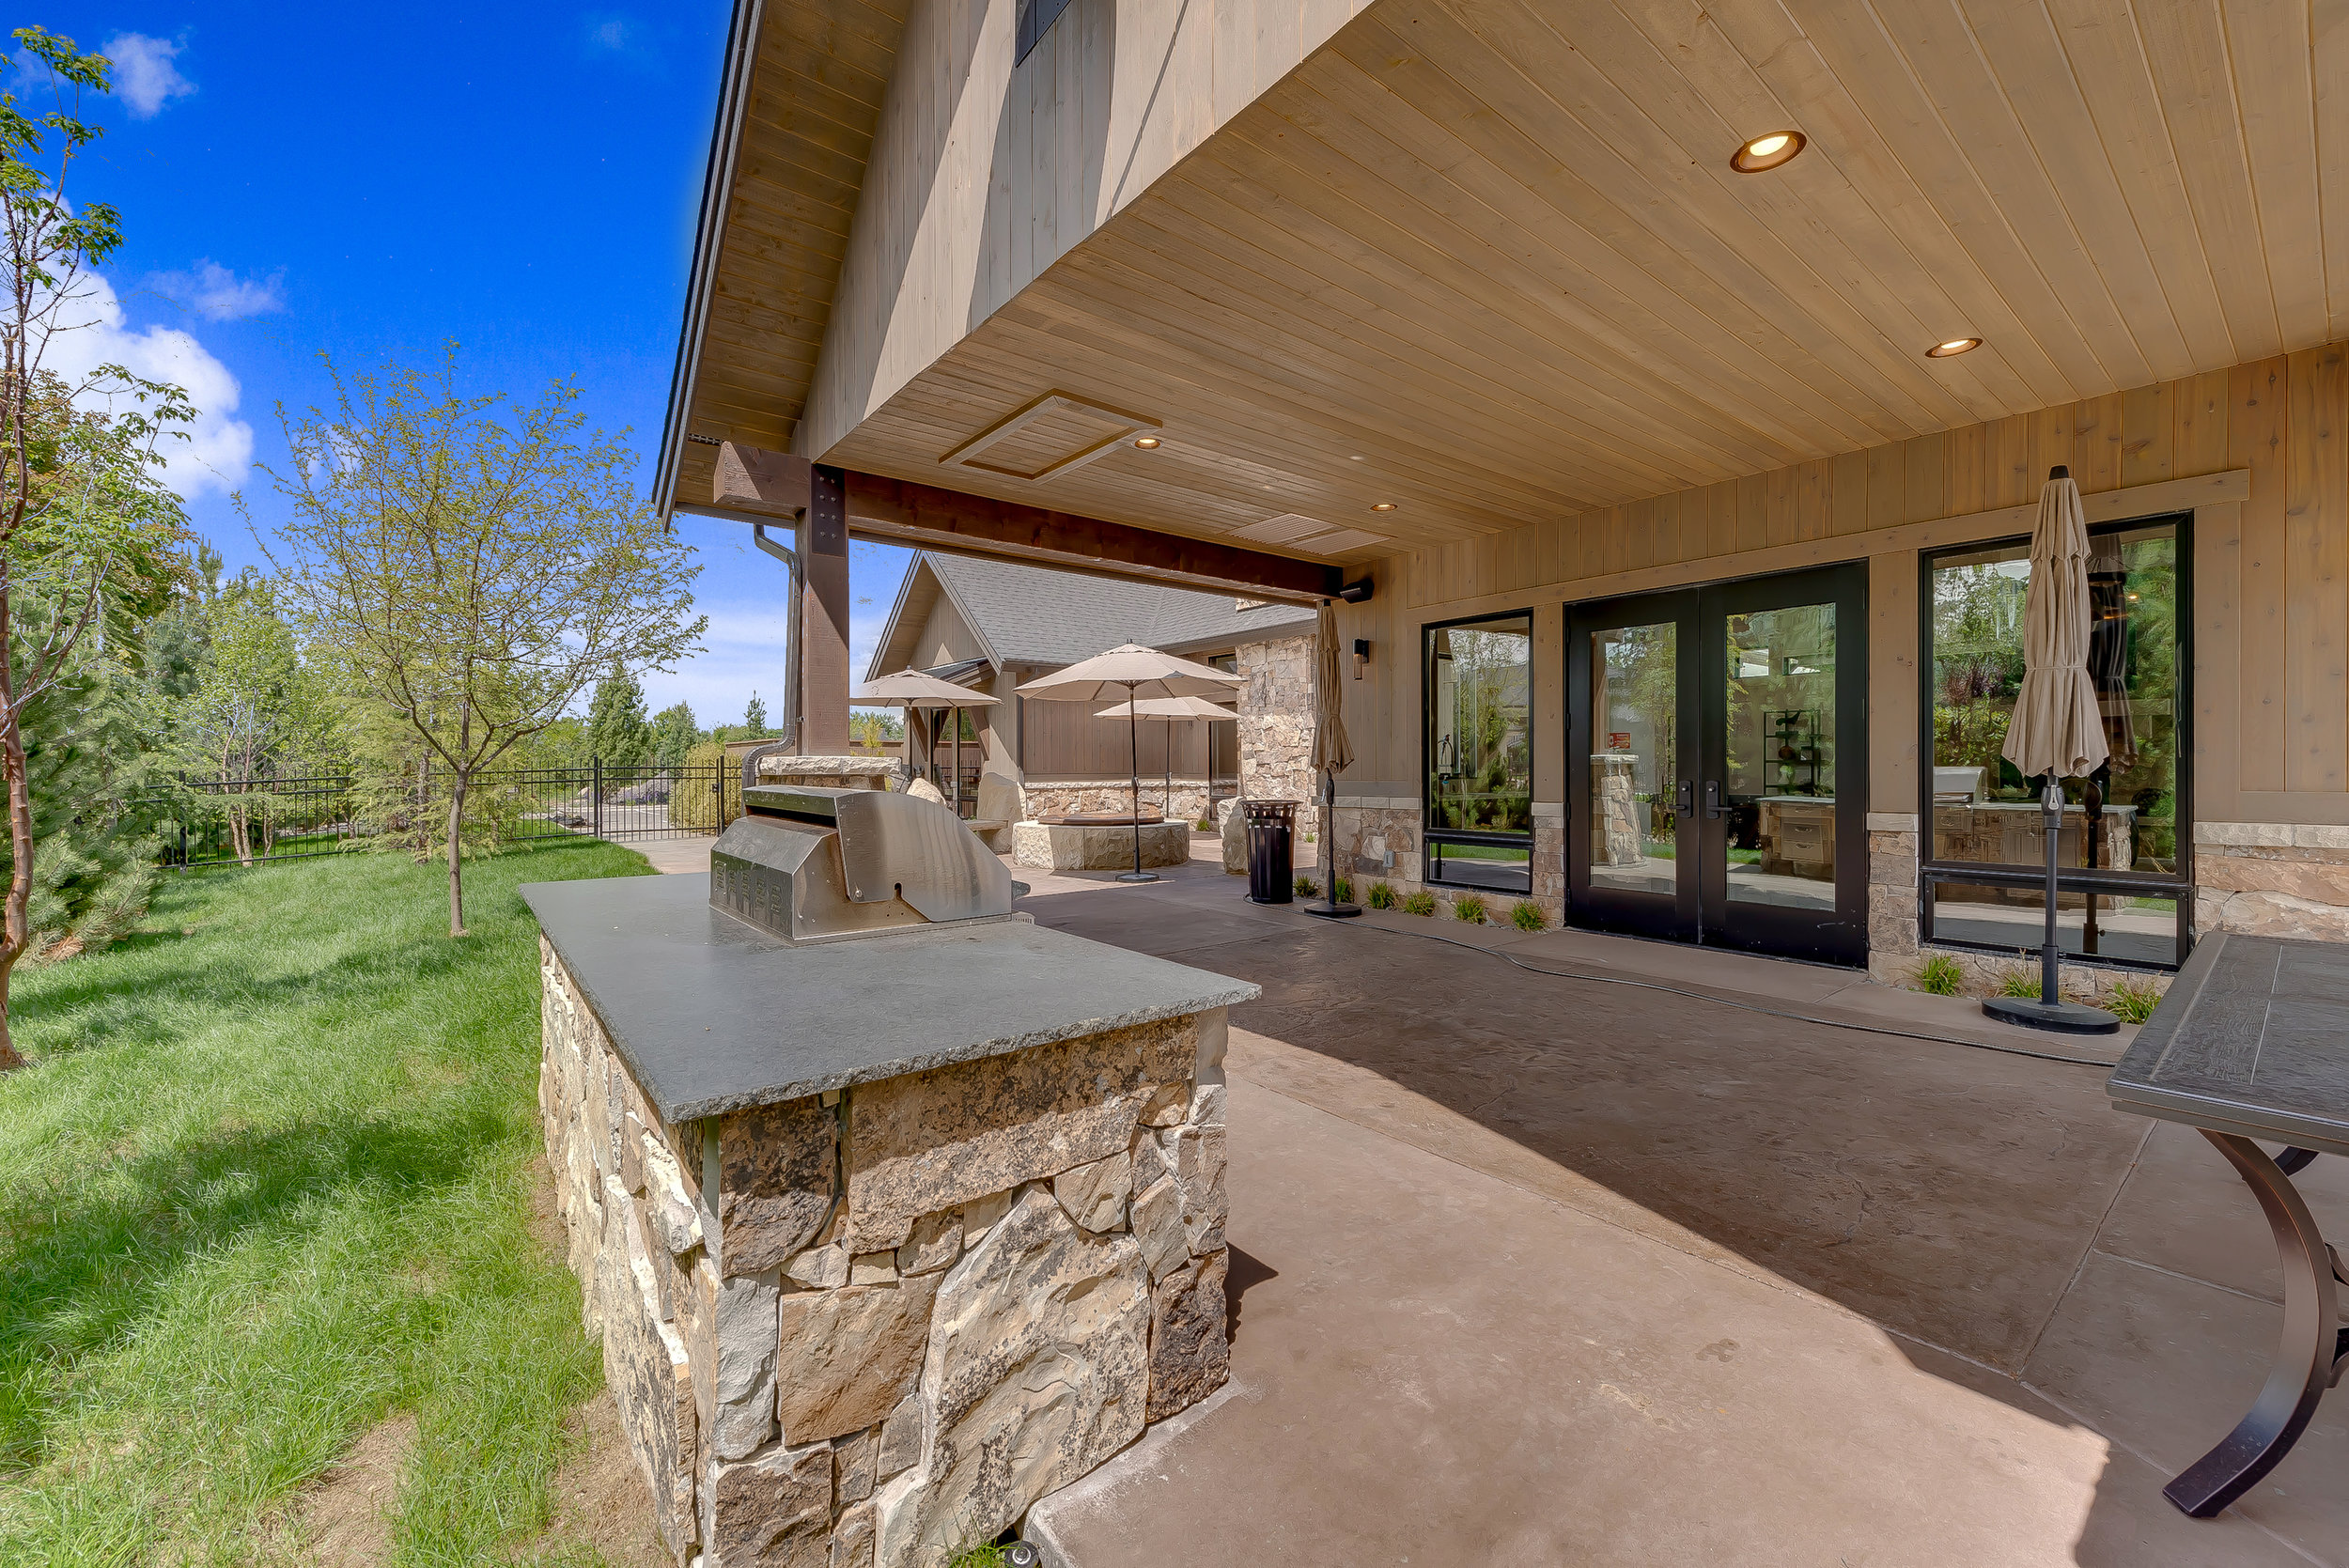 20-Williamson River Ranch Clubhouse.jpg